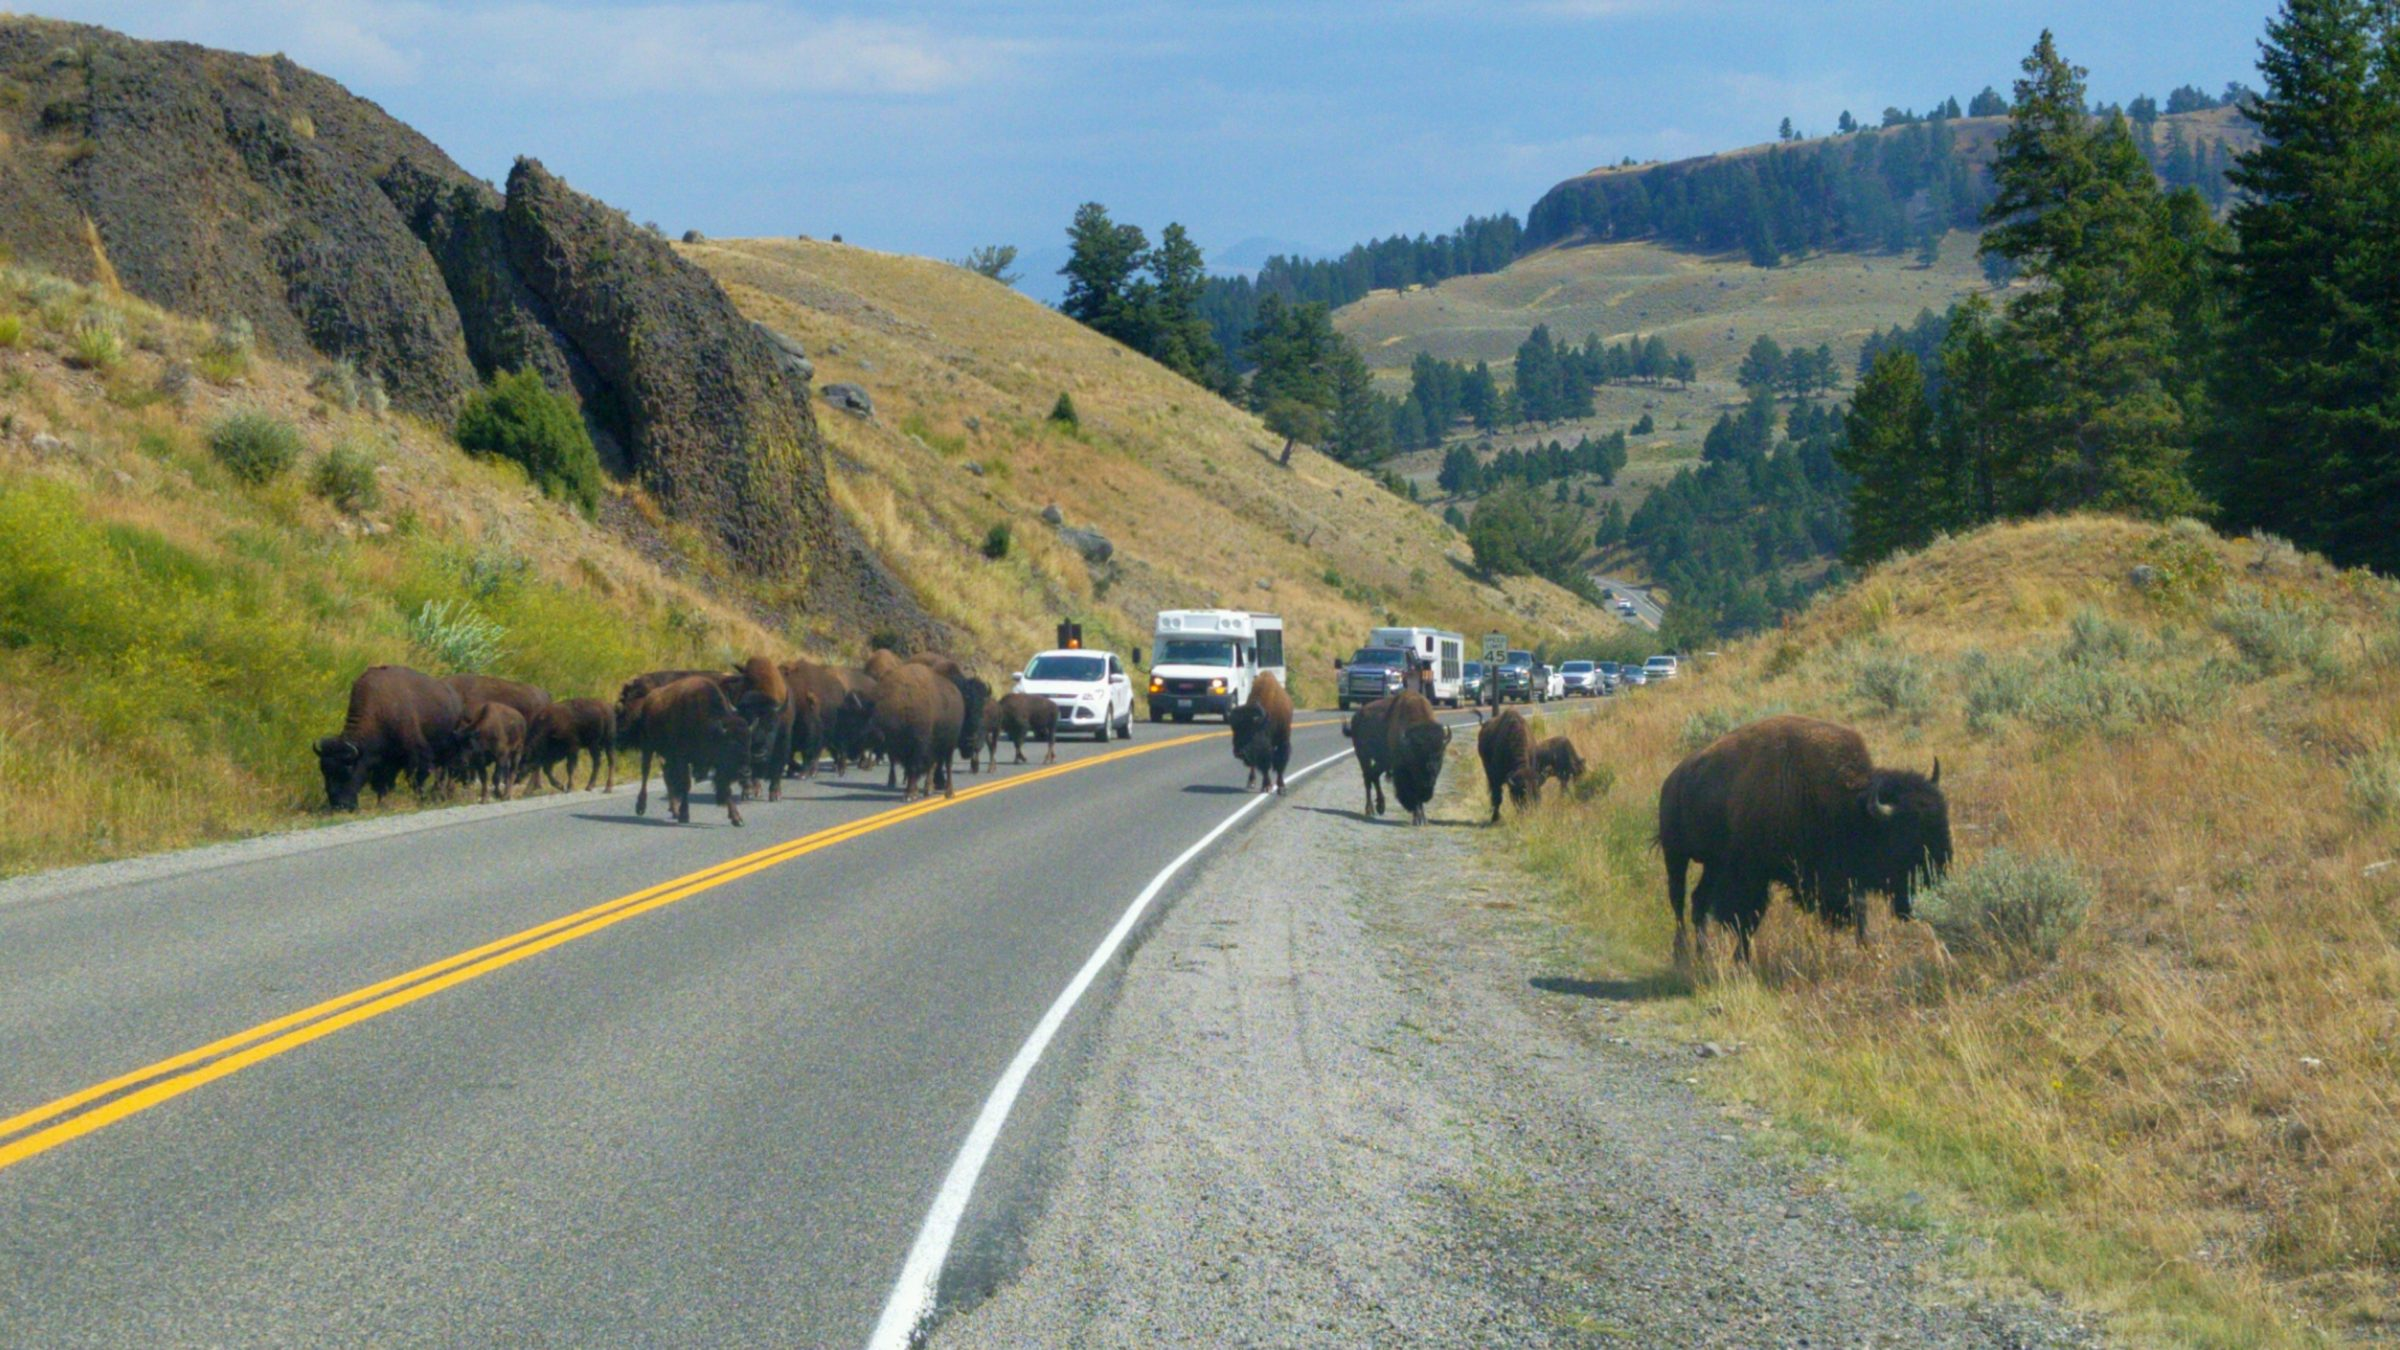 Bison Top 10 Things to Do in Yellowstone